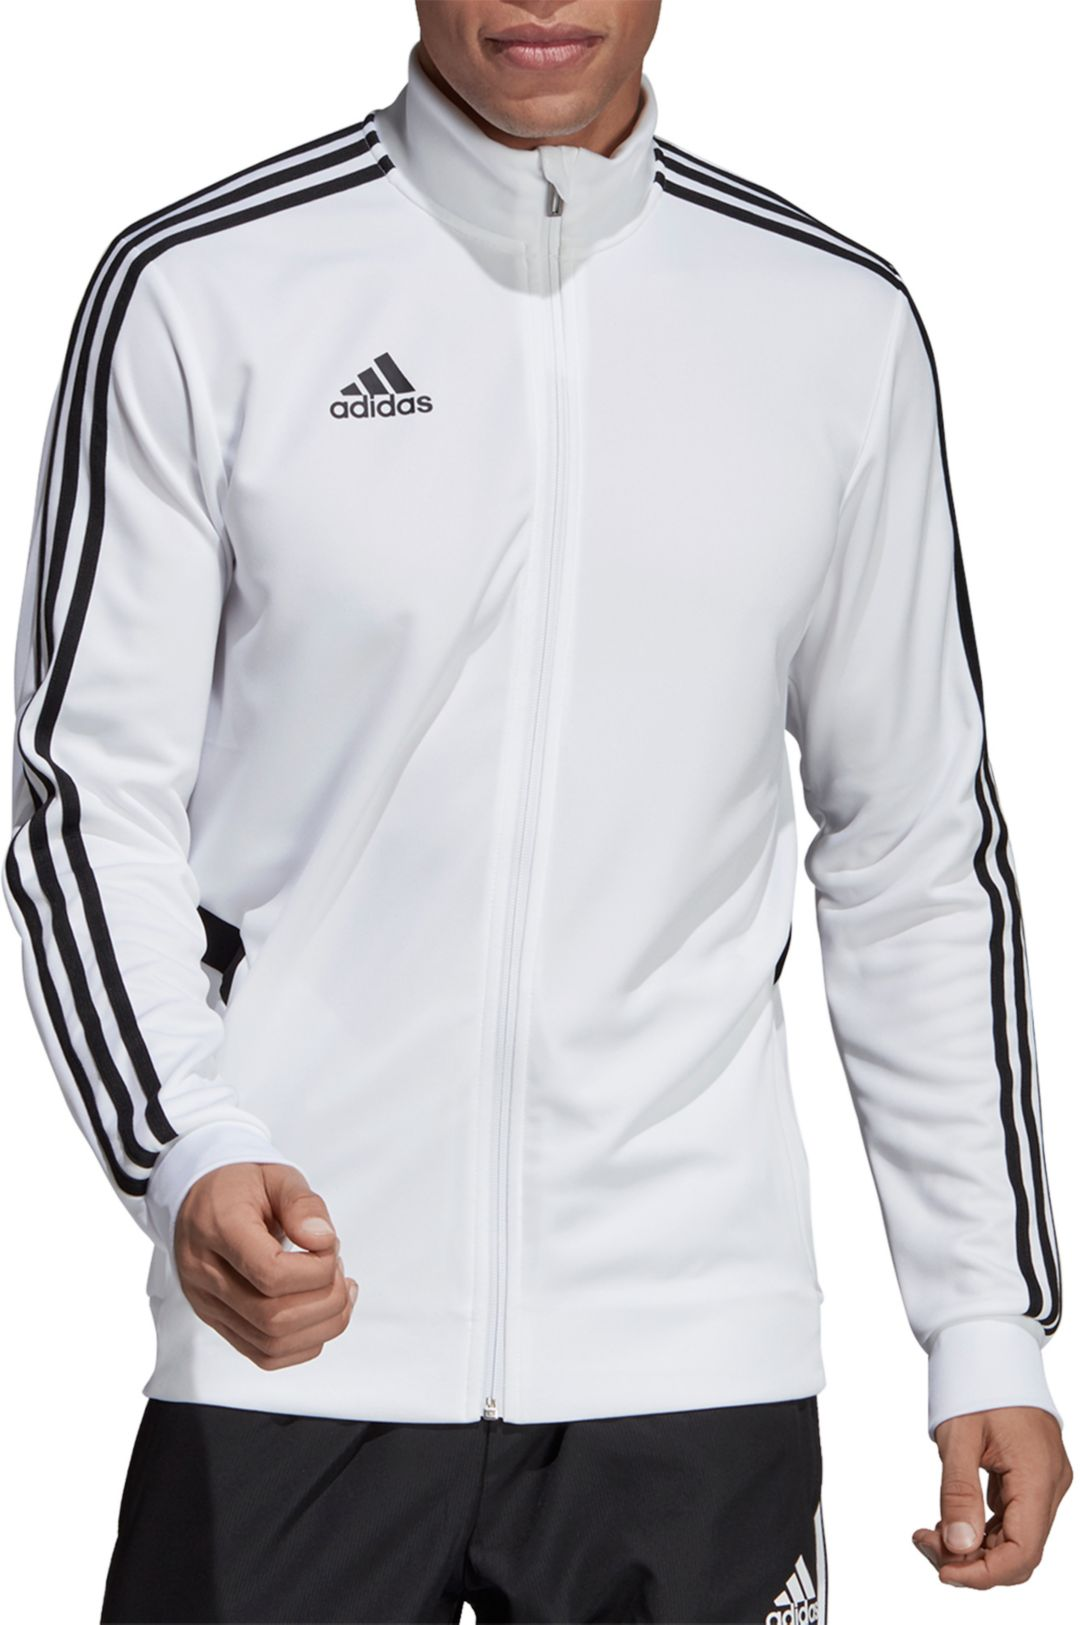 57bb119e8 adidas Men's Tiro 19 Soccer Training Jacket. noImageFound. Previous